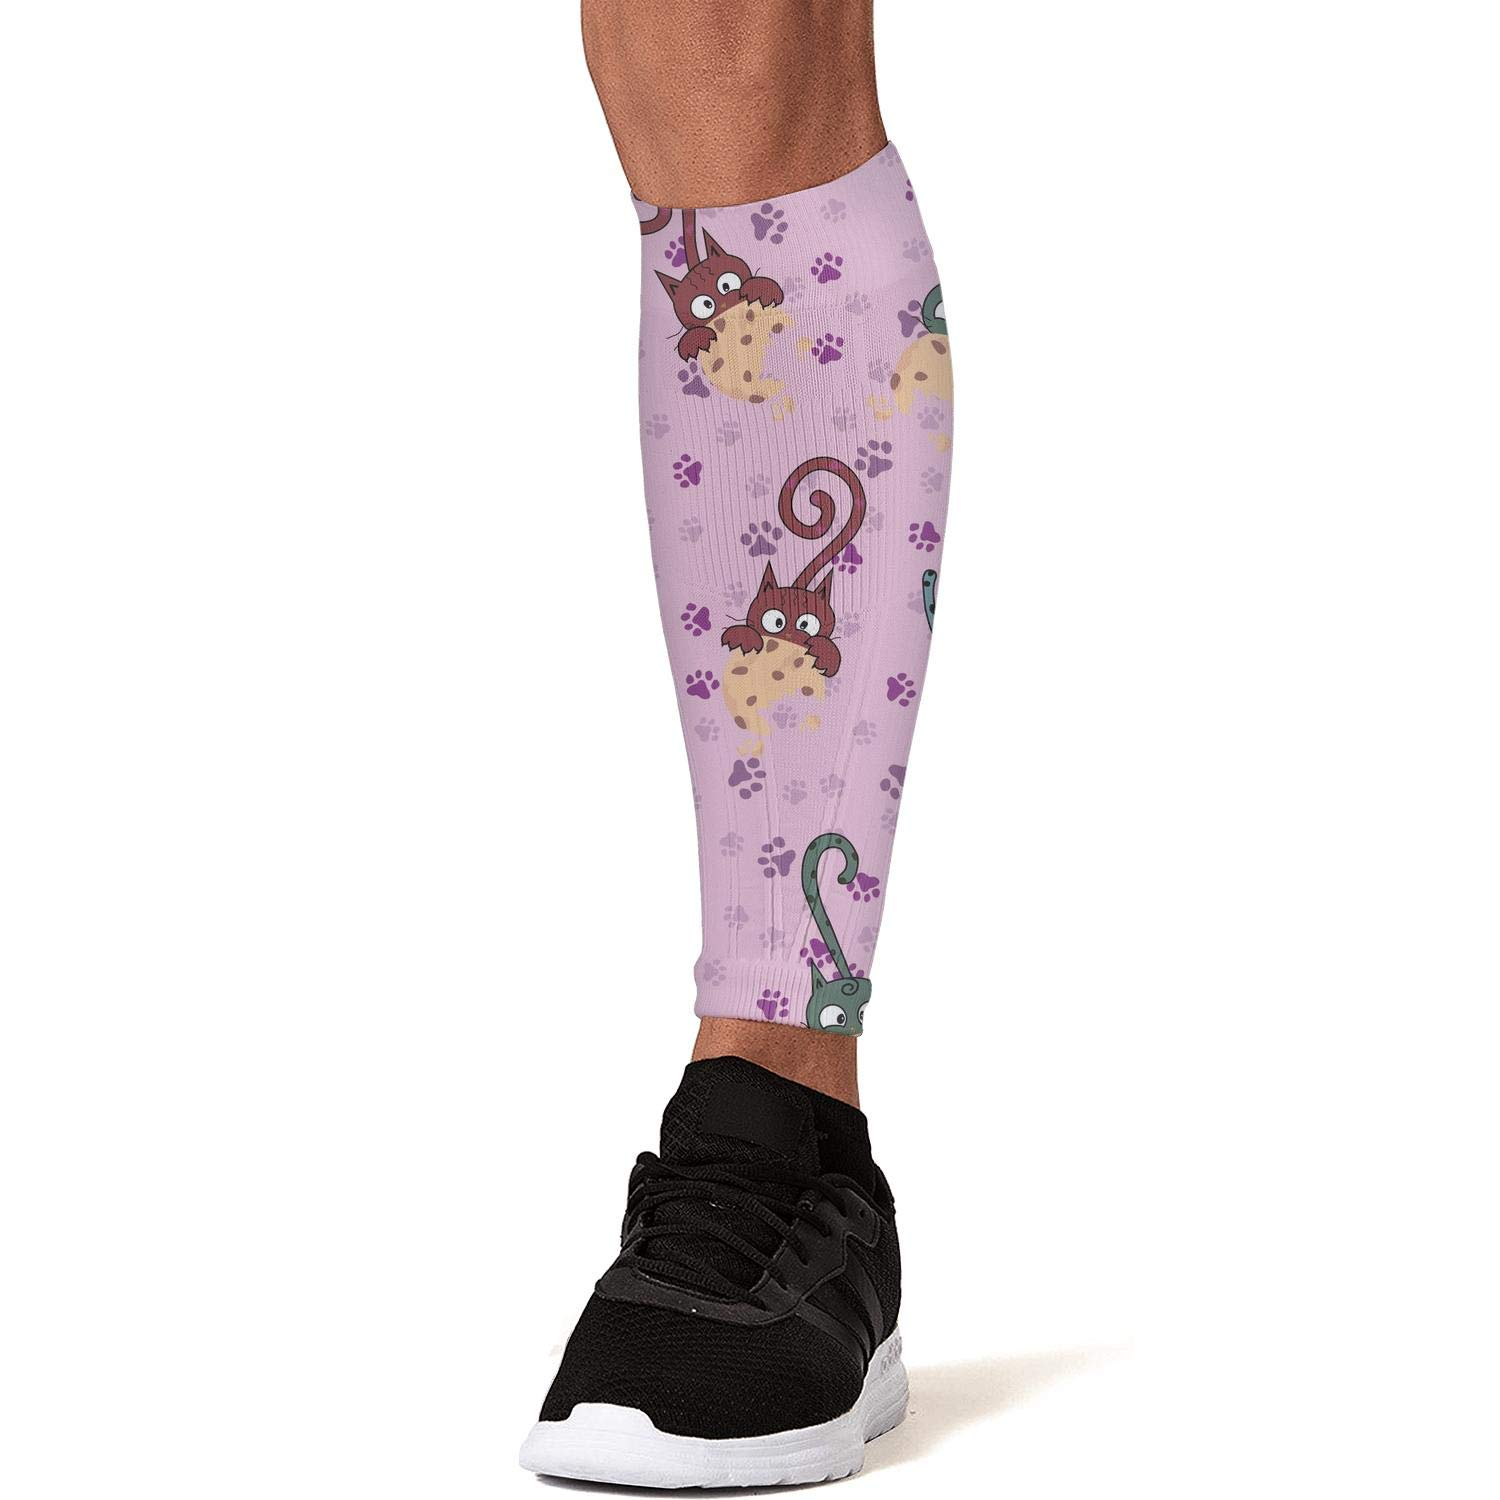 Smilelolly novelty kitty cats Calf Compression Sleeves Helps Shin Splint Leg Sleeves for Men Women